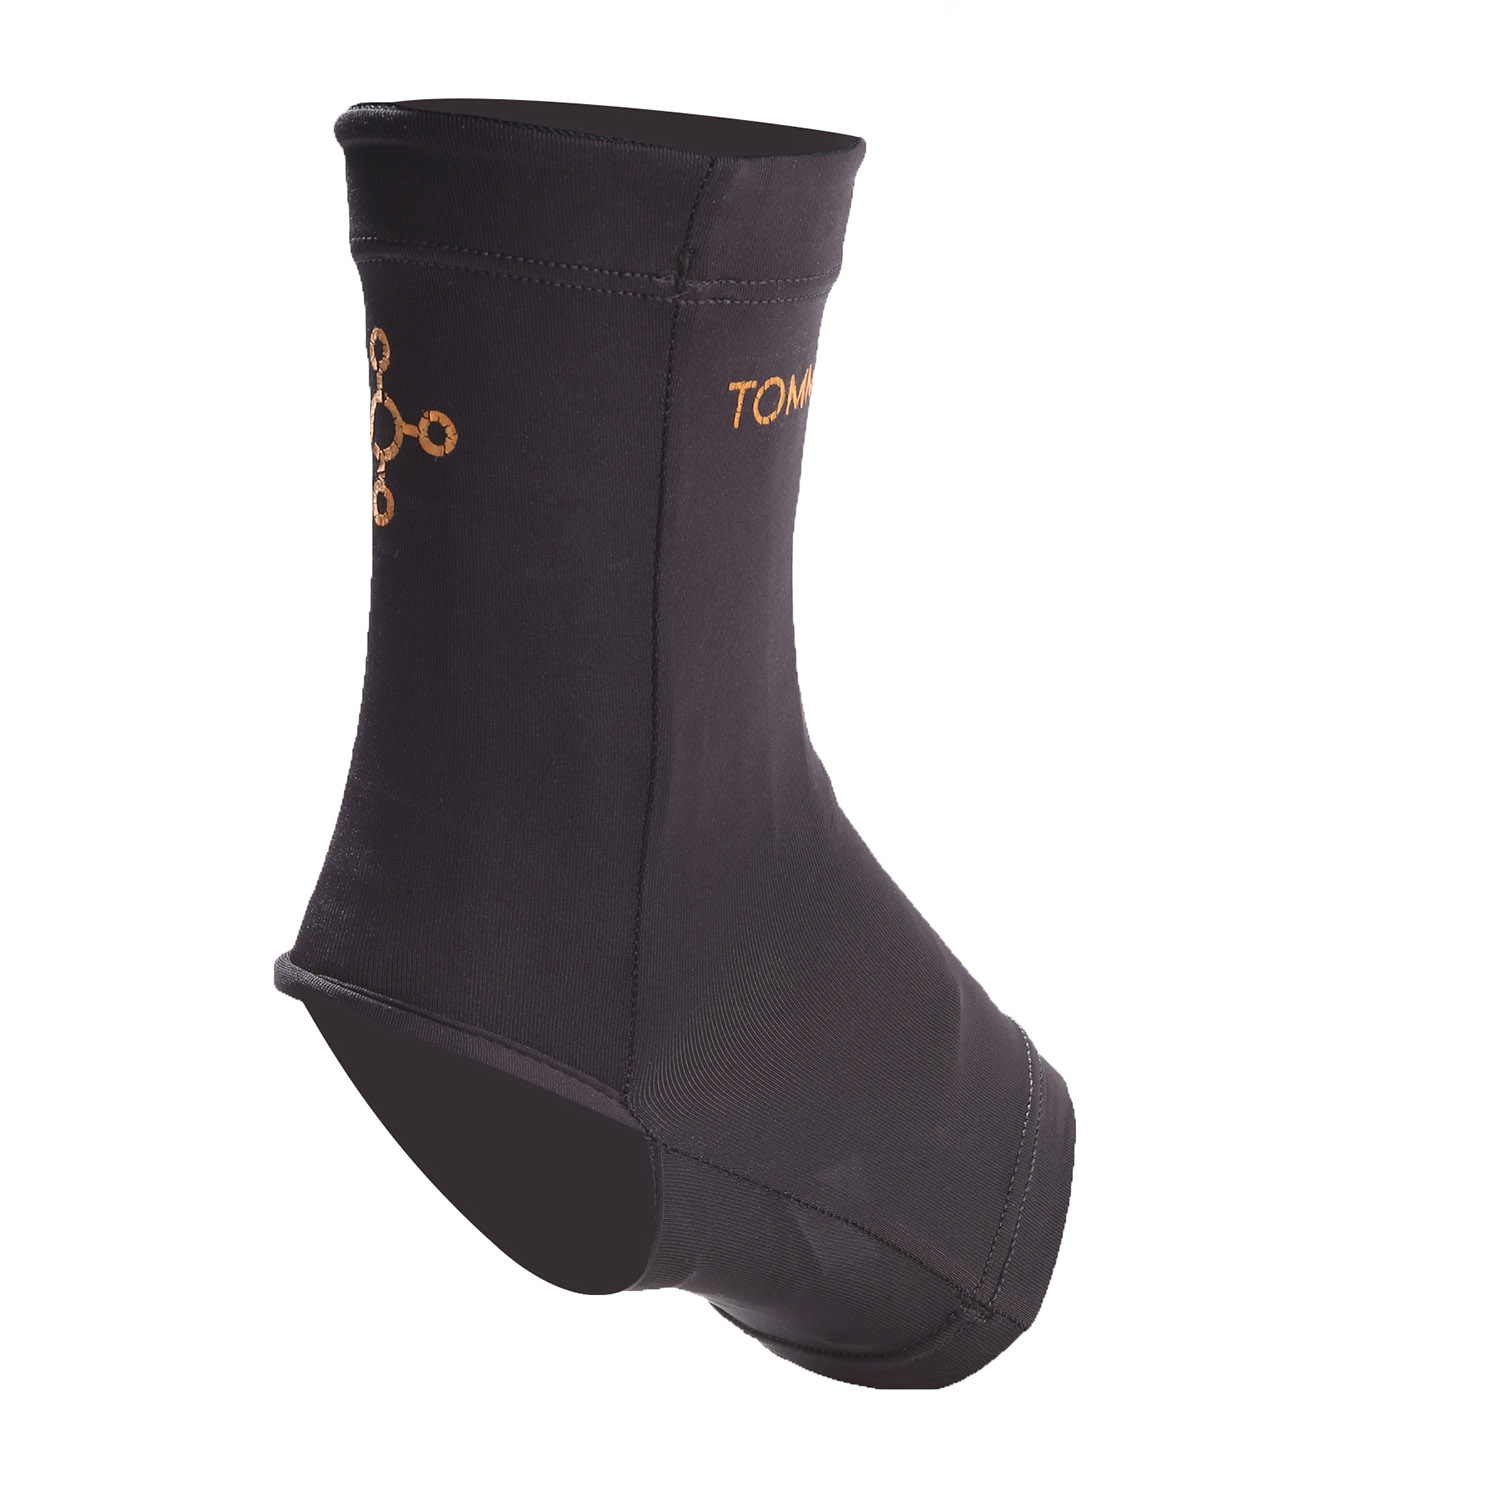 Stores that sell tommie copper - Tommie Copper Ankle Compression Sleeve